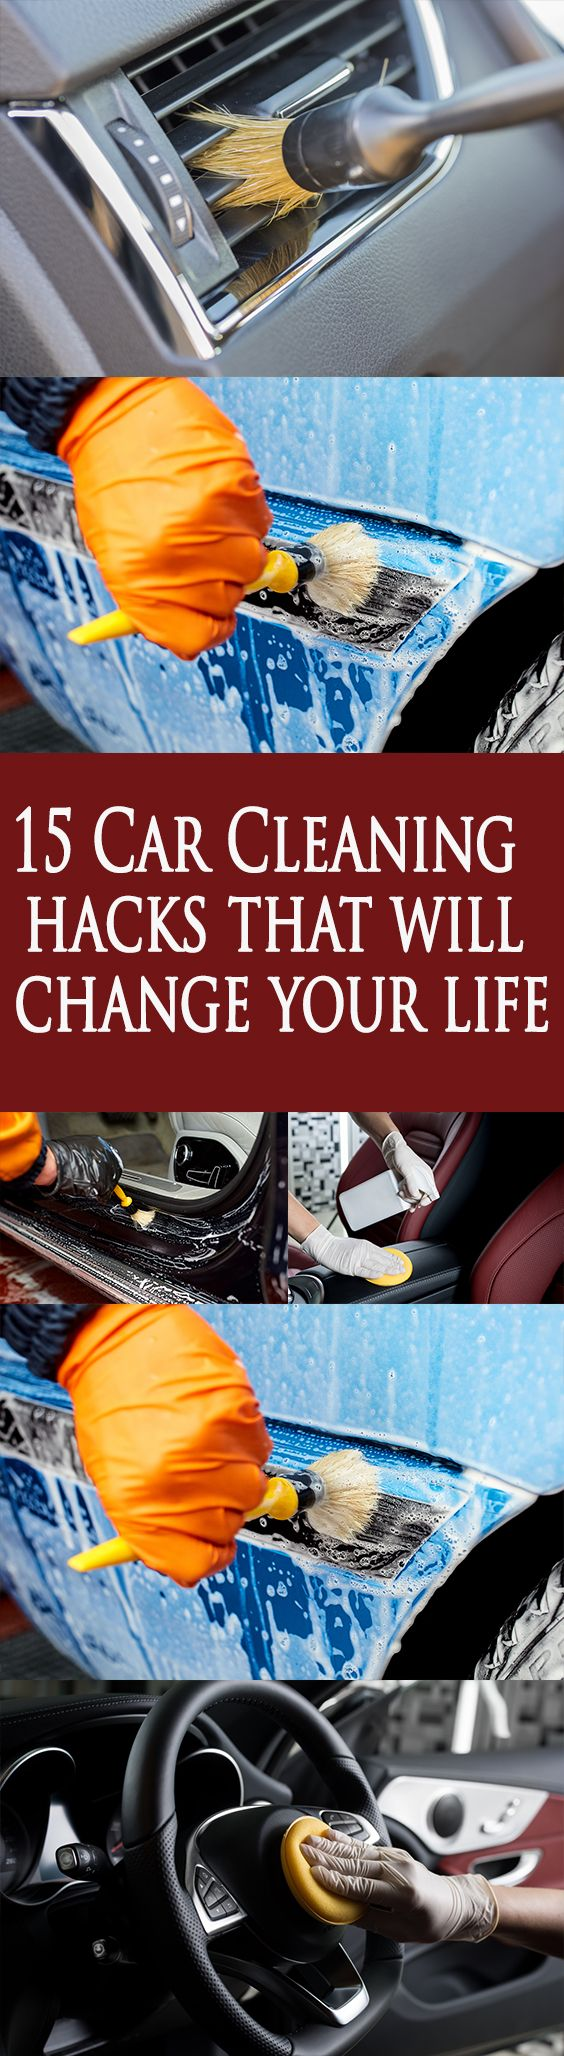 15 Car Cleaning hacks that will change your life